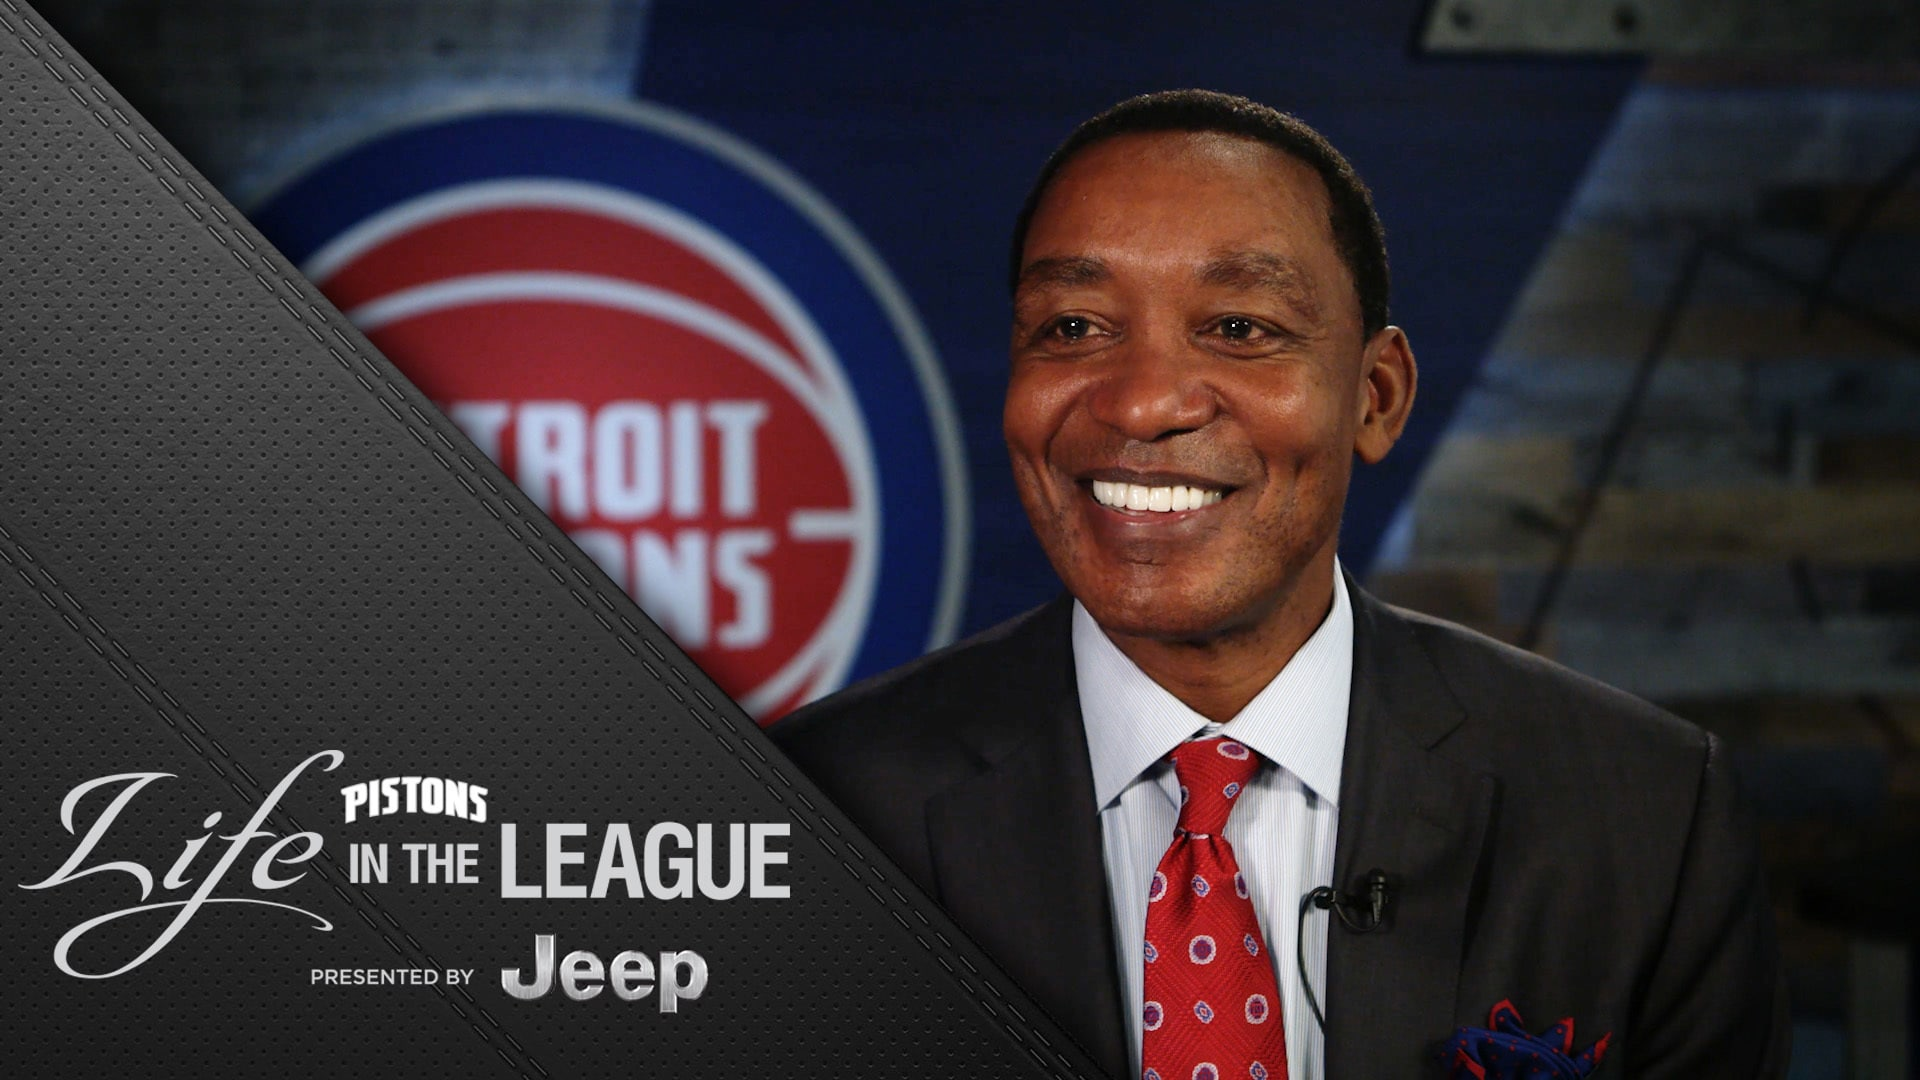 Life in the League, presented by Jeep: Isiah Visits the Henry Ford Pistons Performance Center